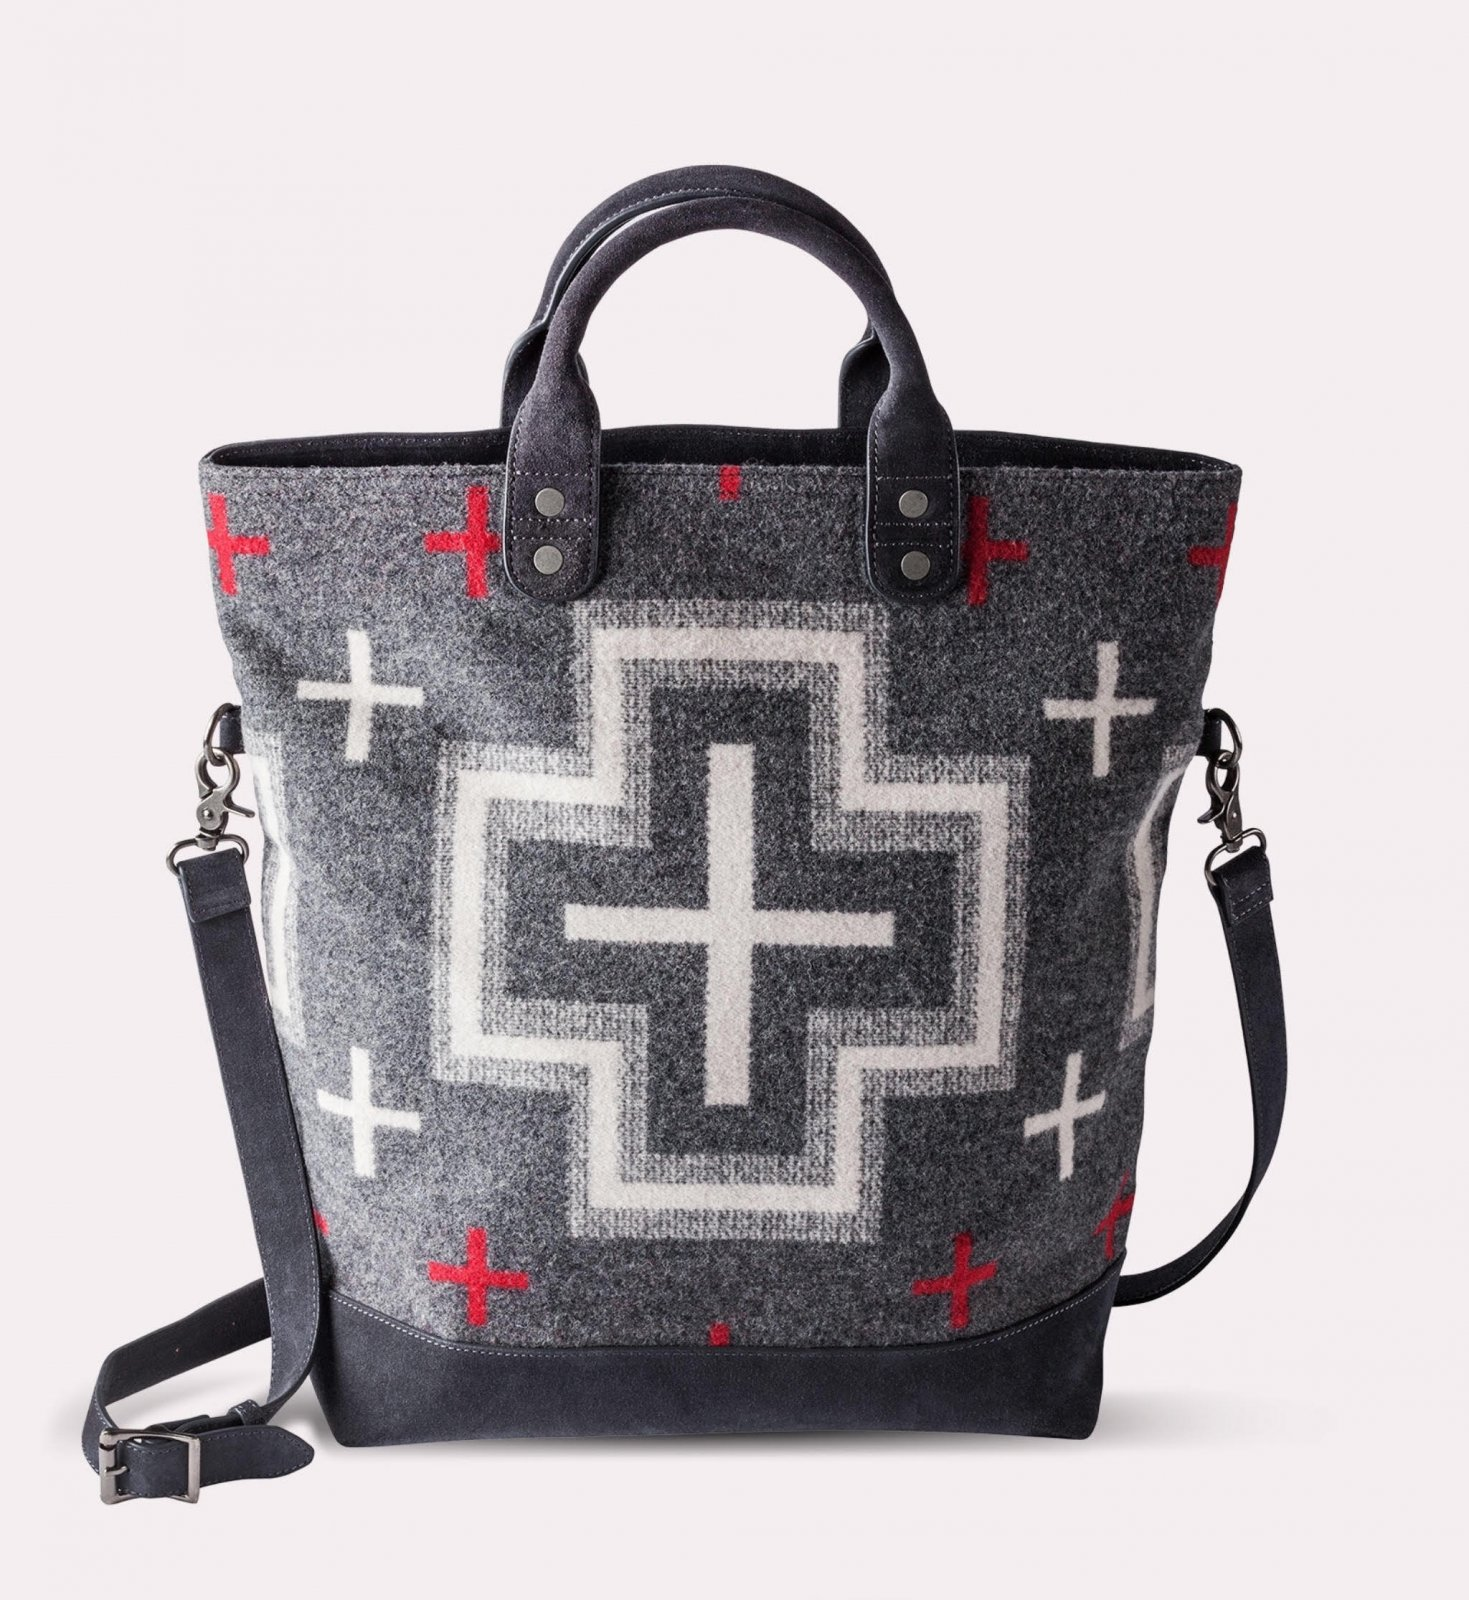 San MIguel Long Tote from Pendleton